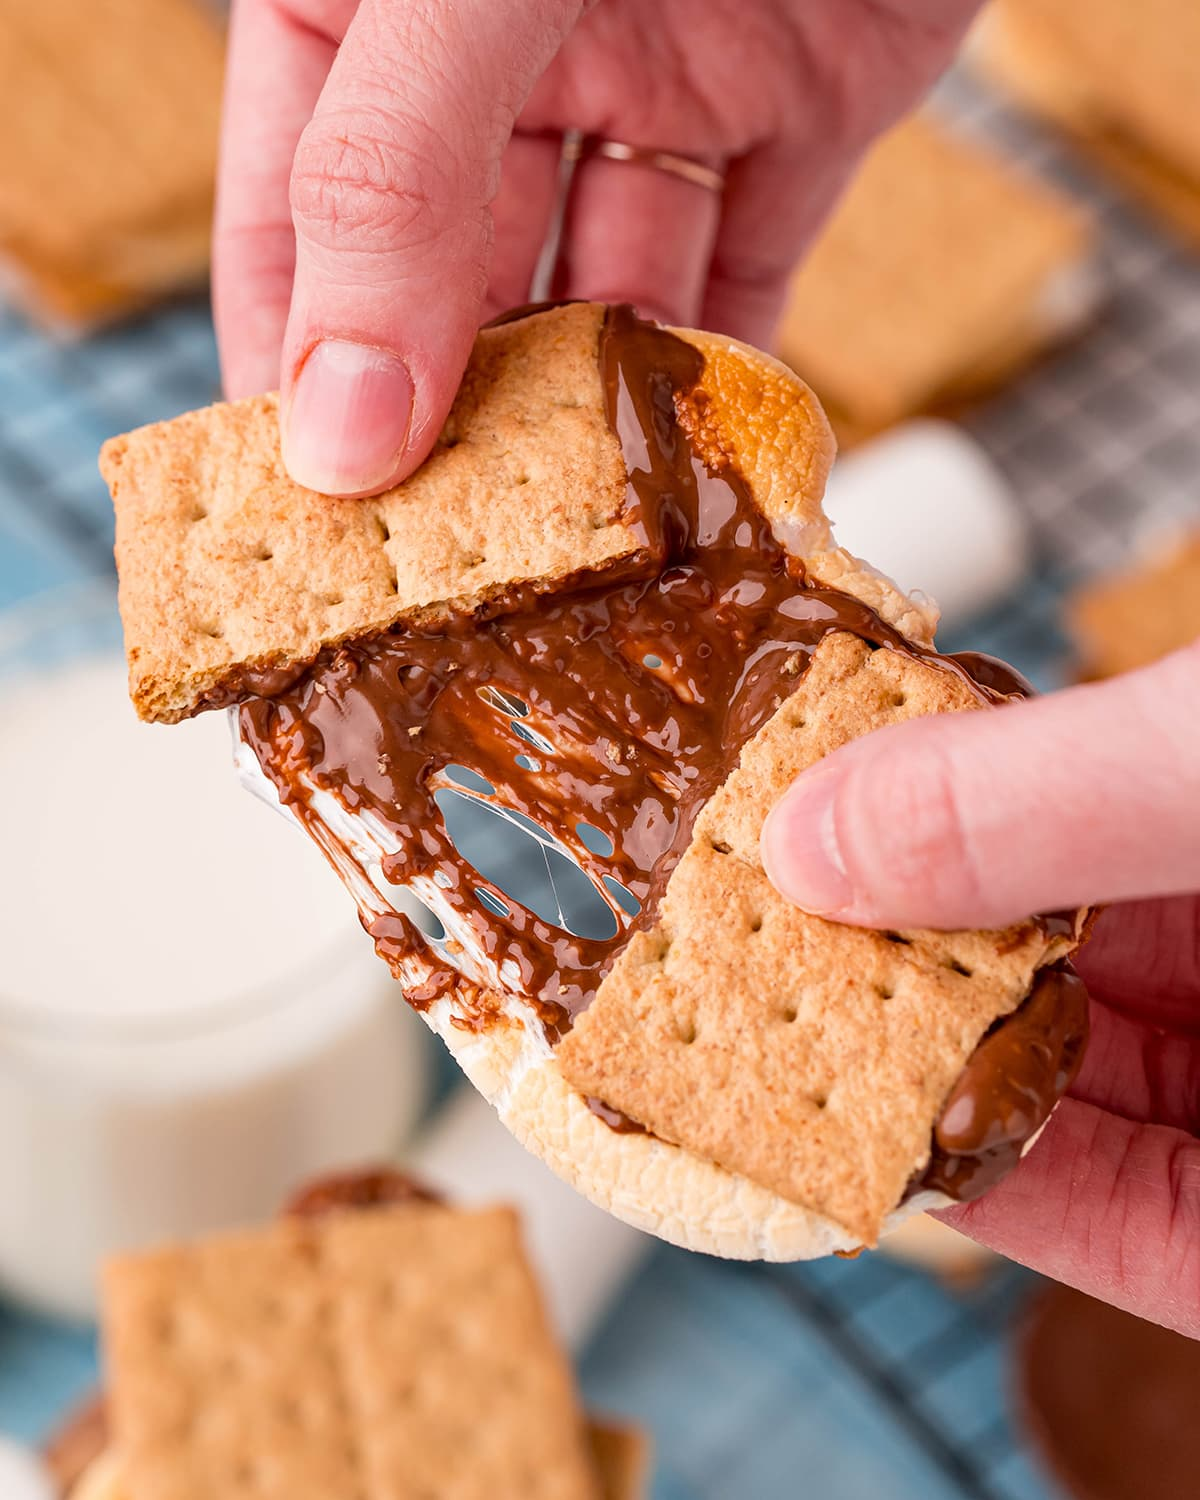 A hand holding a s'more, broken in half showing the gooey marshmallow and chocolate separating in the middle.